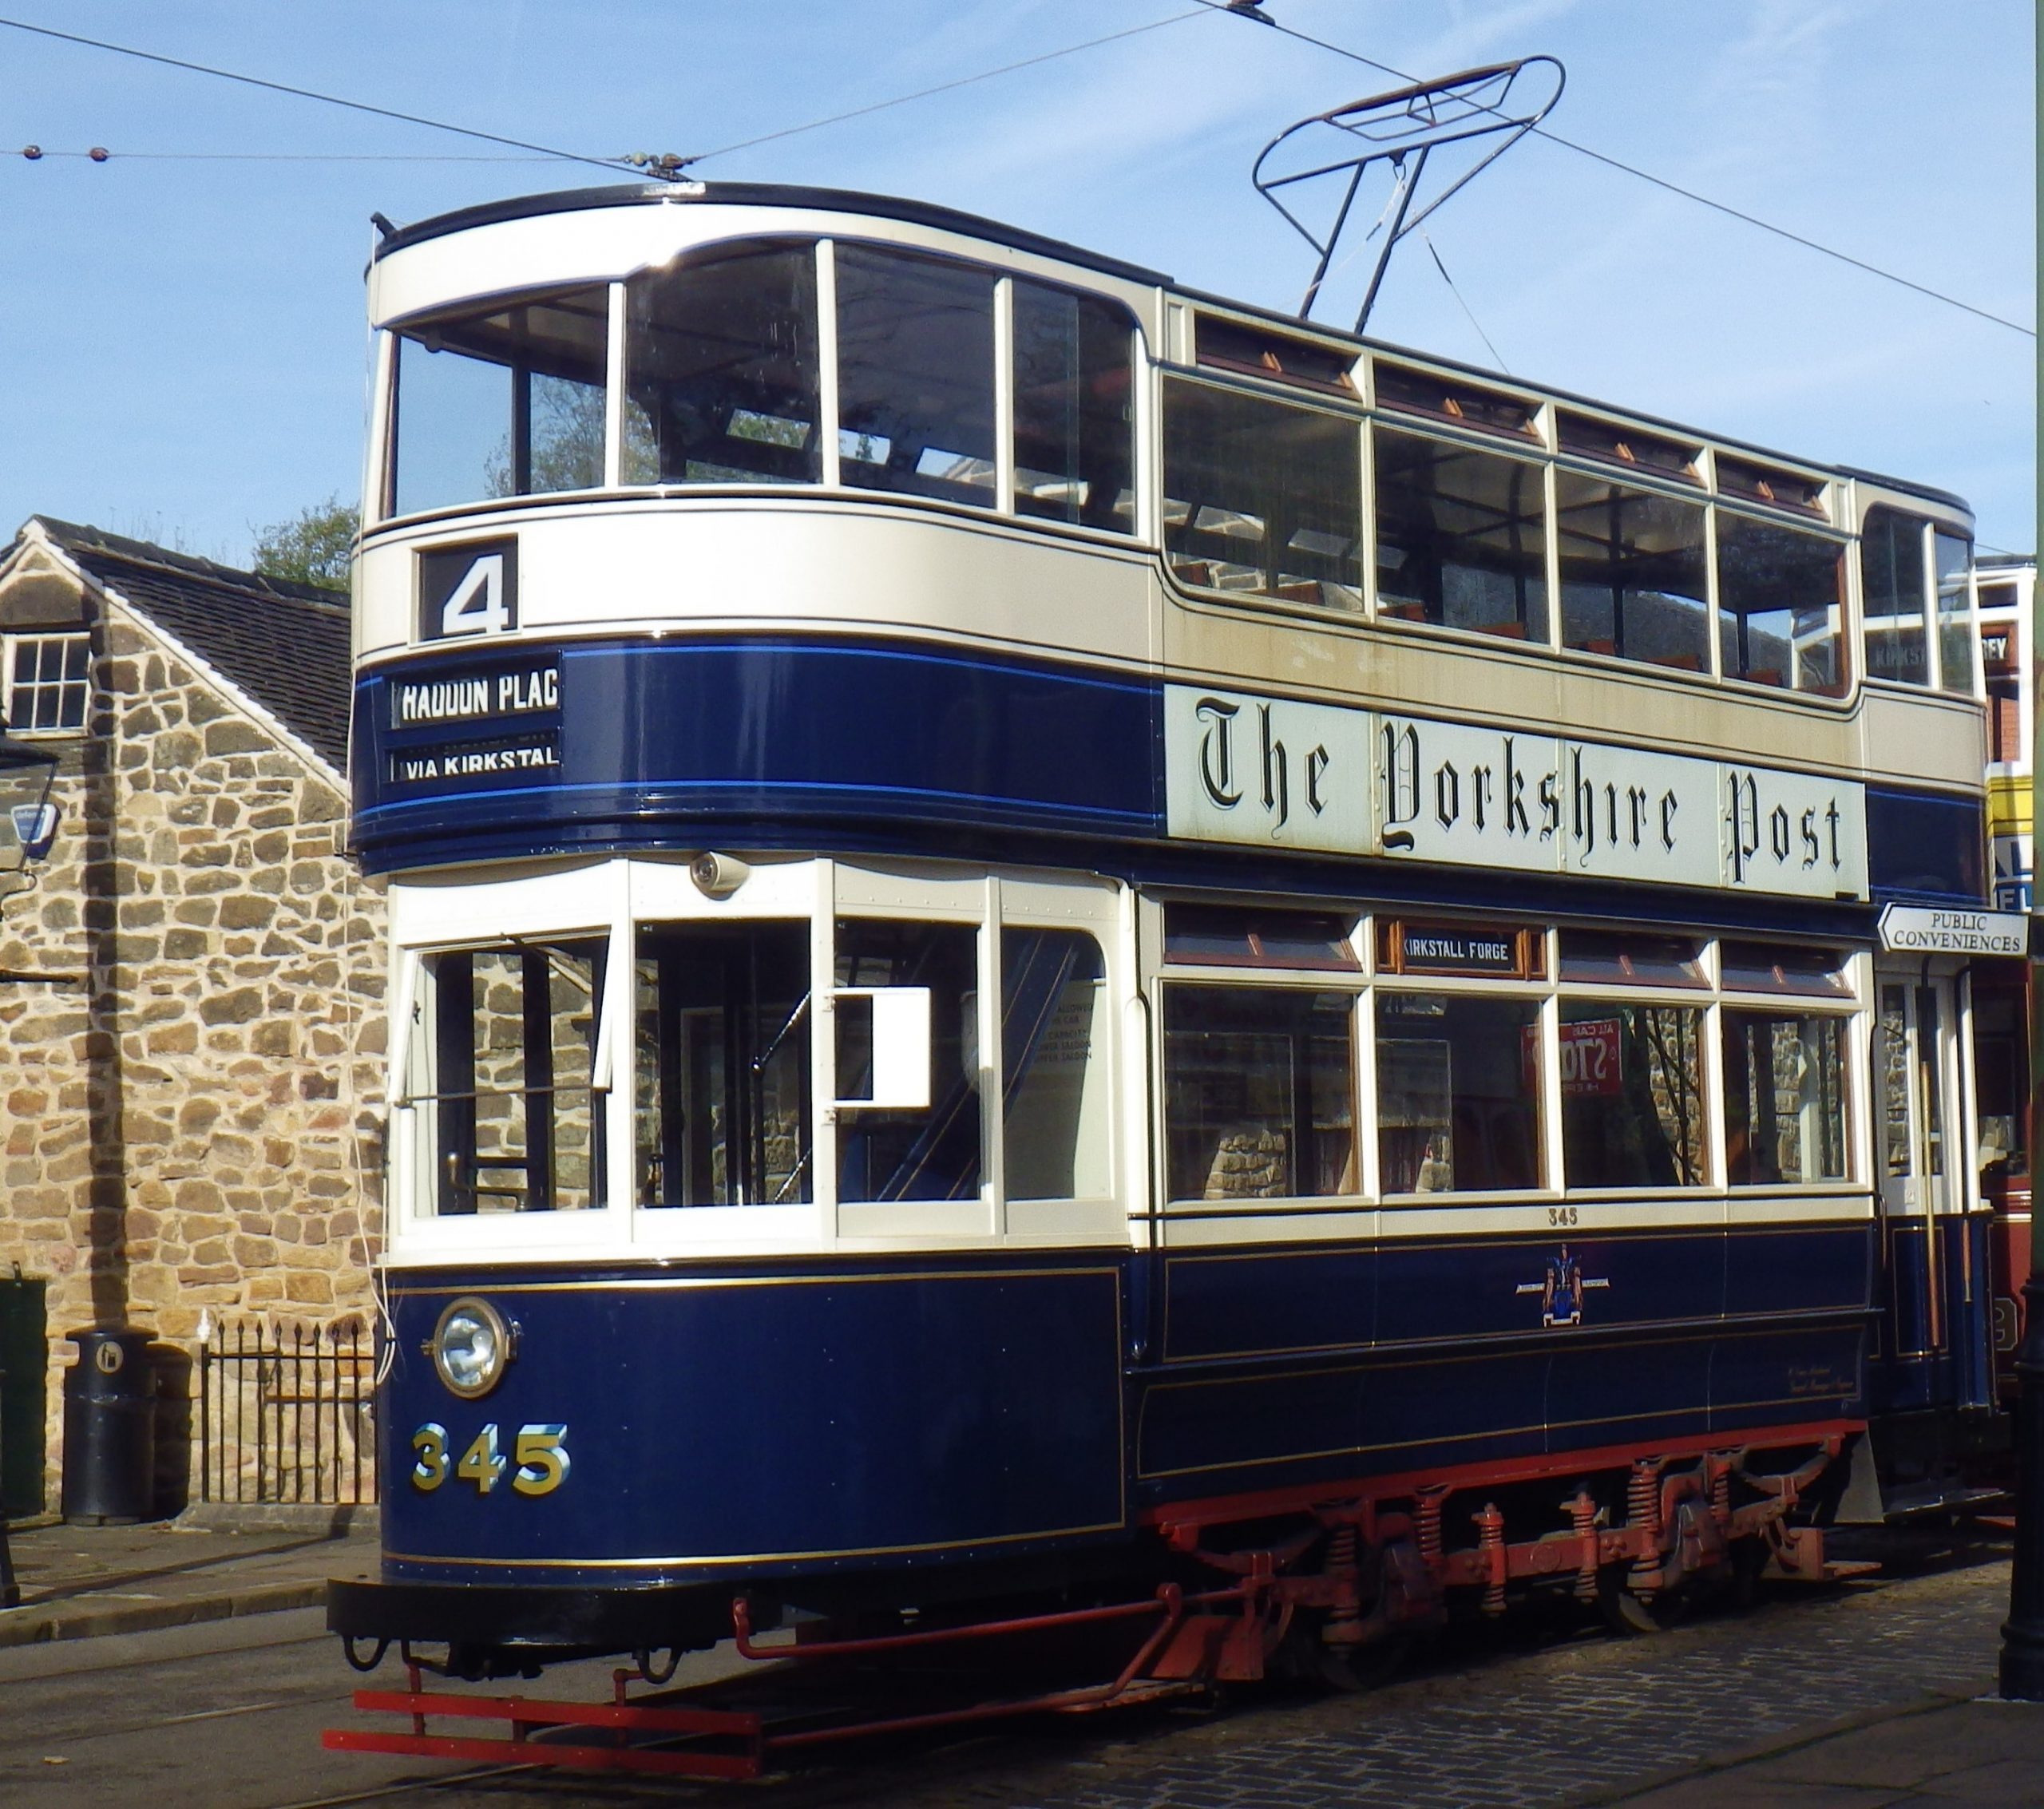 Leeds 345 in 2017 at Crich Tramway Village